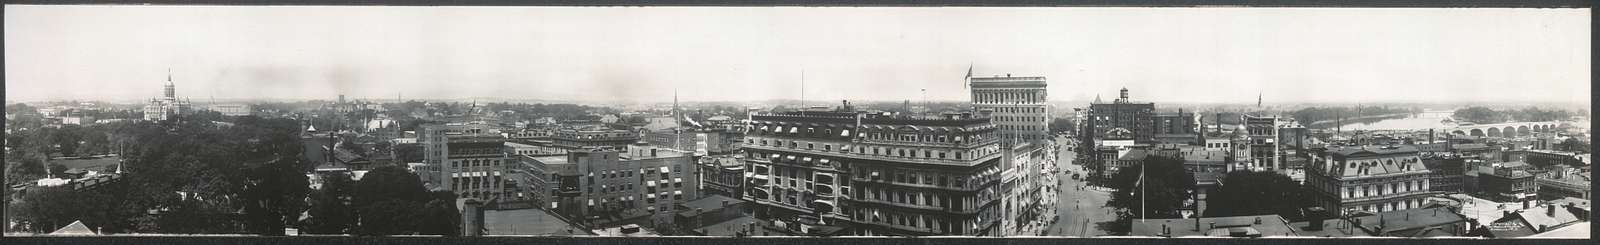 Panorama of Hartford, Conn.